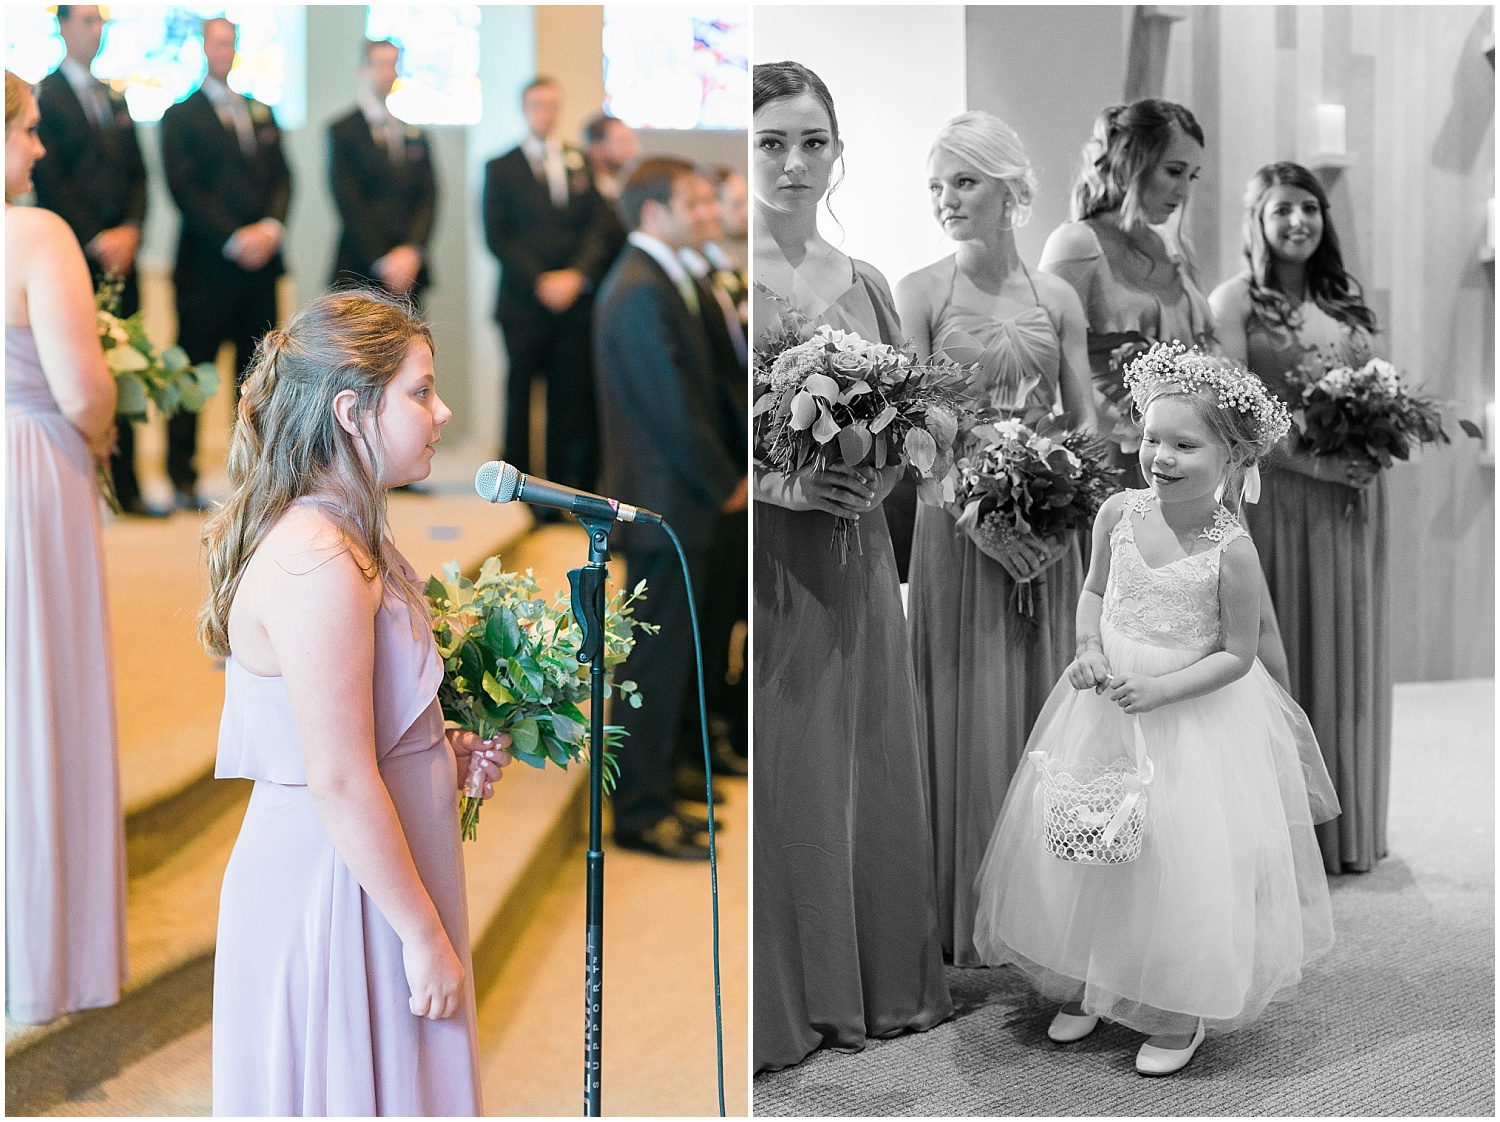 Madison singing as Lauren comes down the aisle.  Love this shot of the sweet flower girl watching!